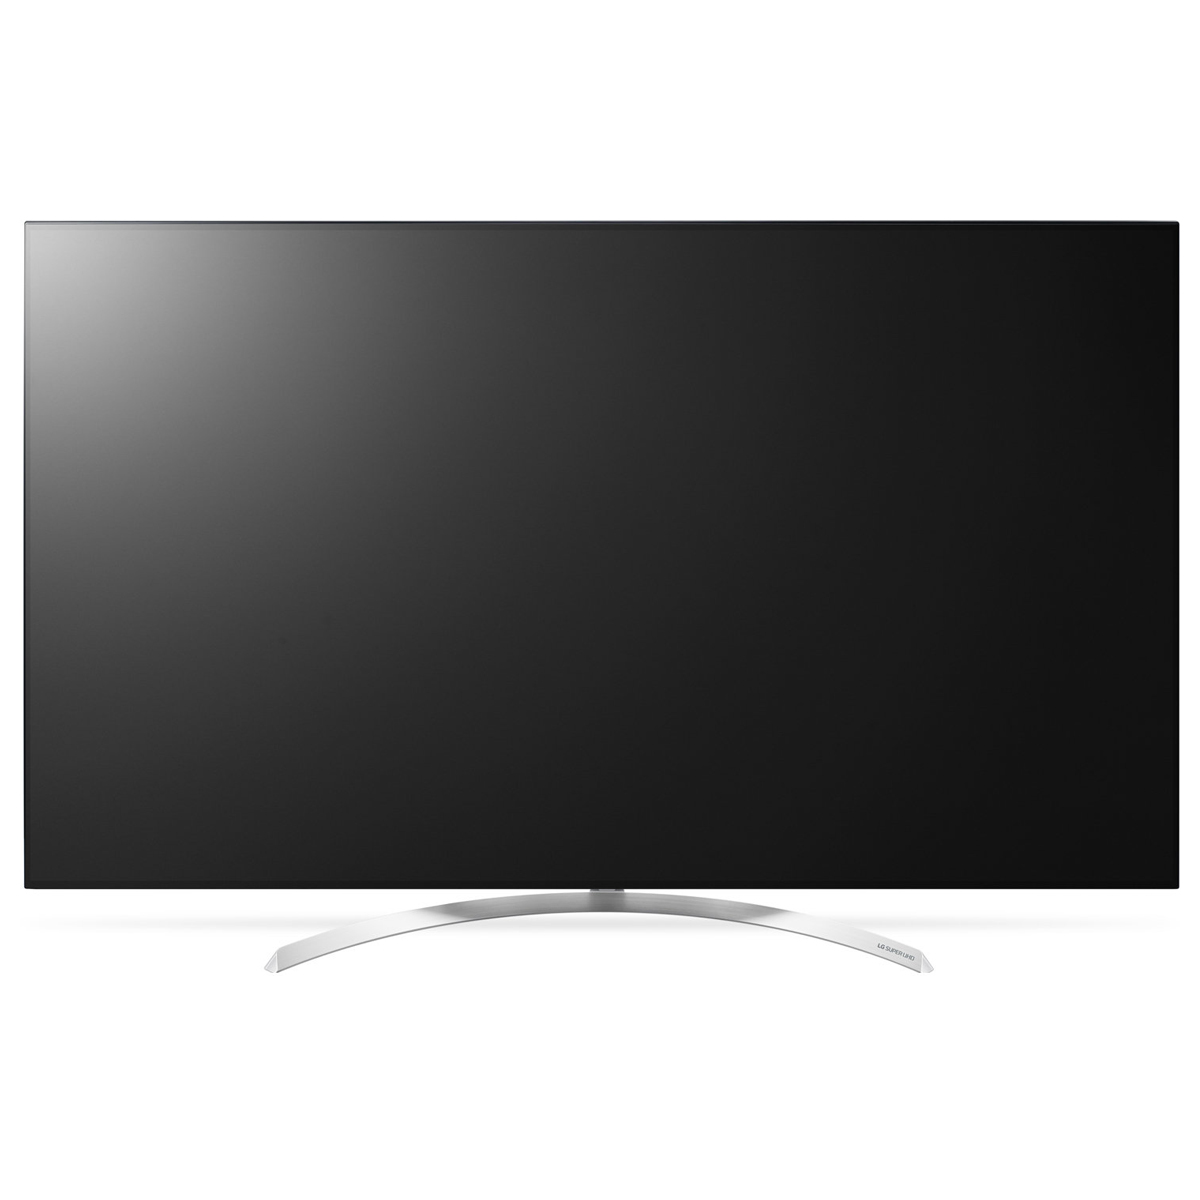 LG 60SJ850T 60 Inch 151cm Smart 4K Super UHD LED LCD TV